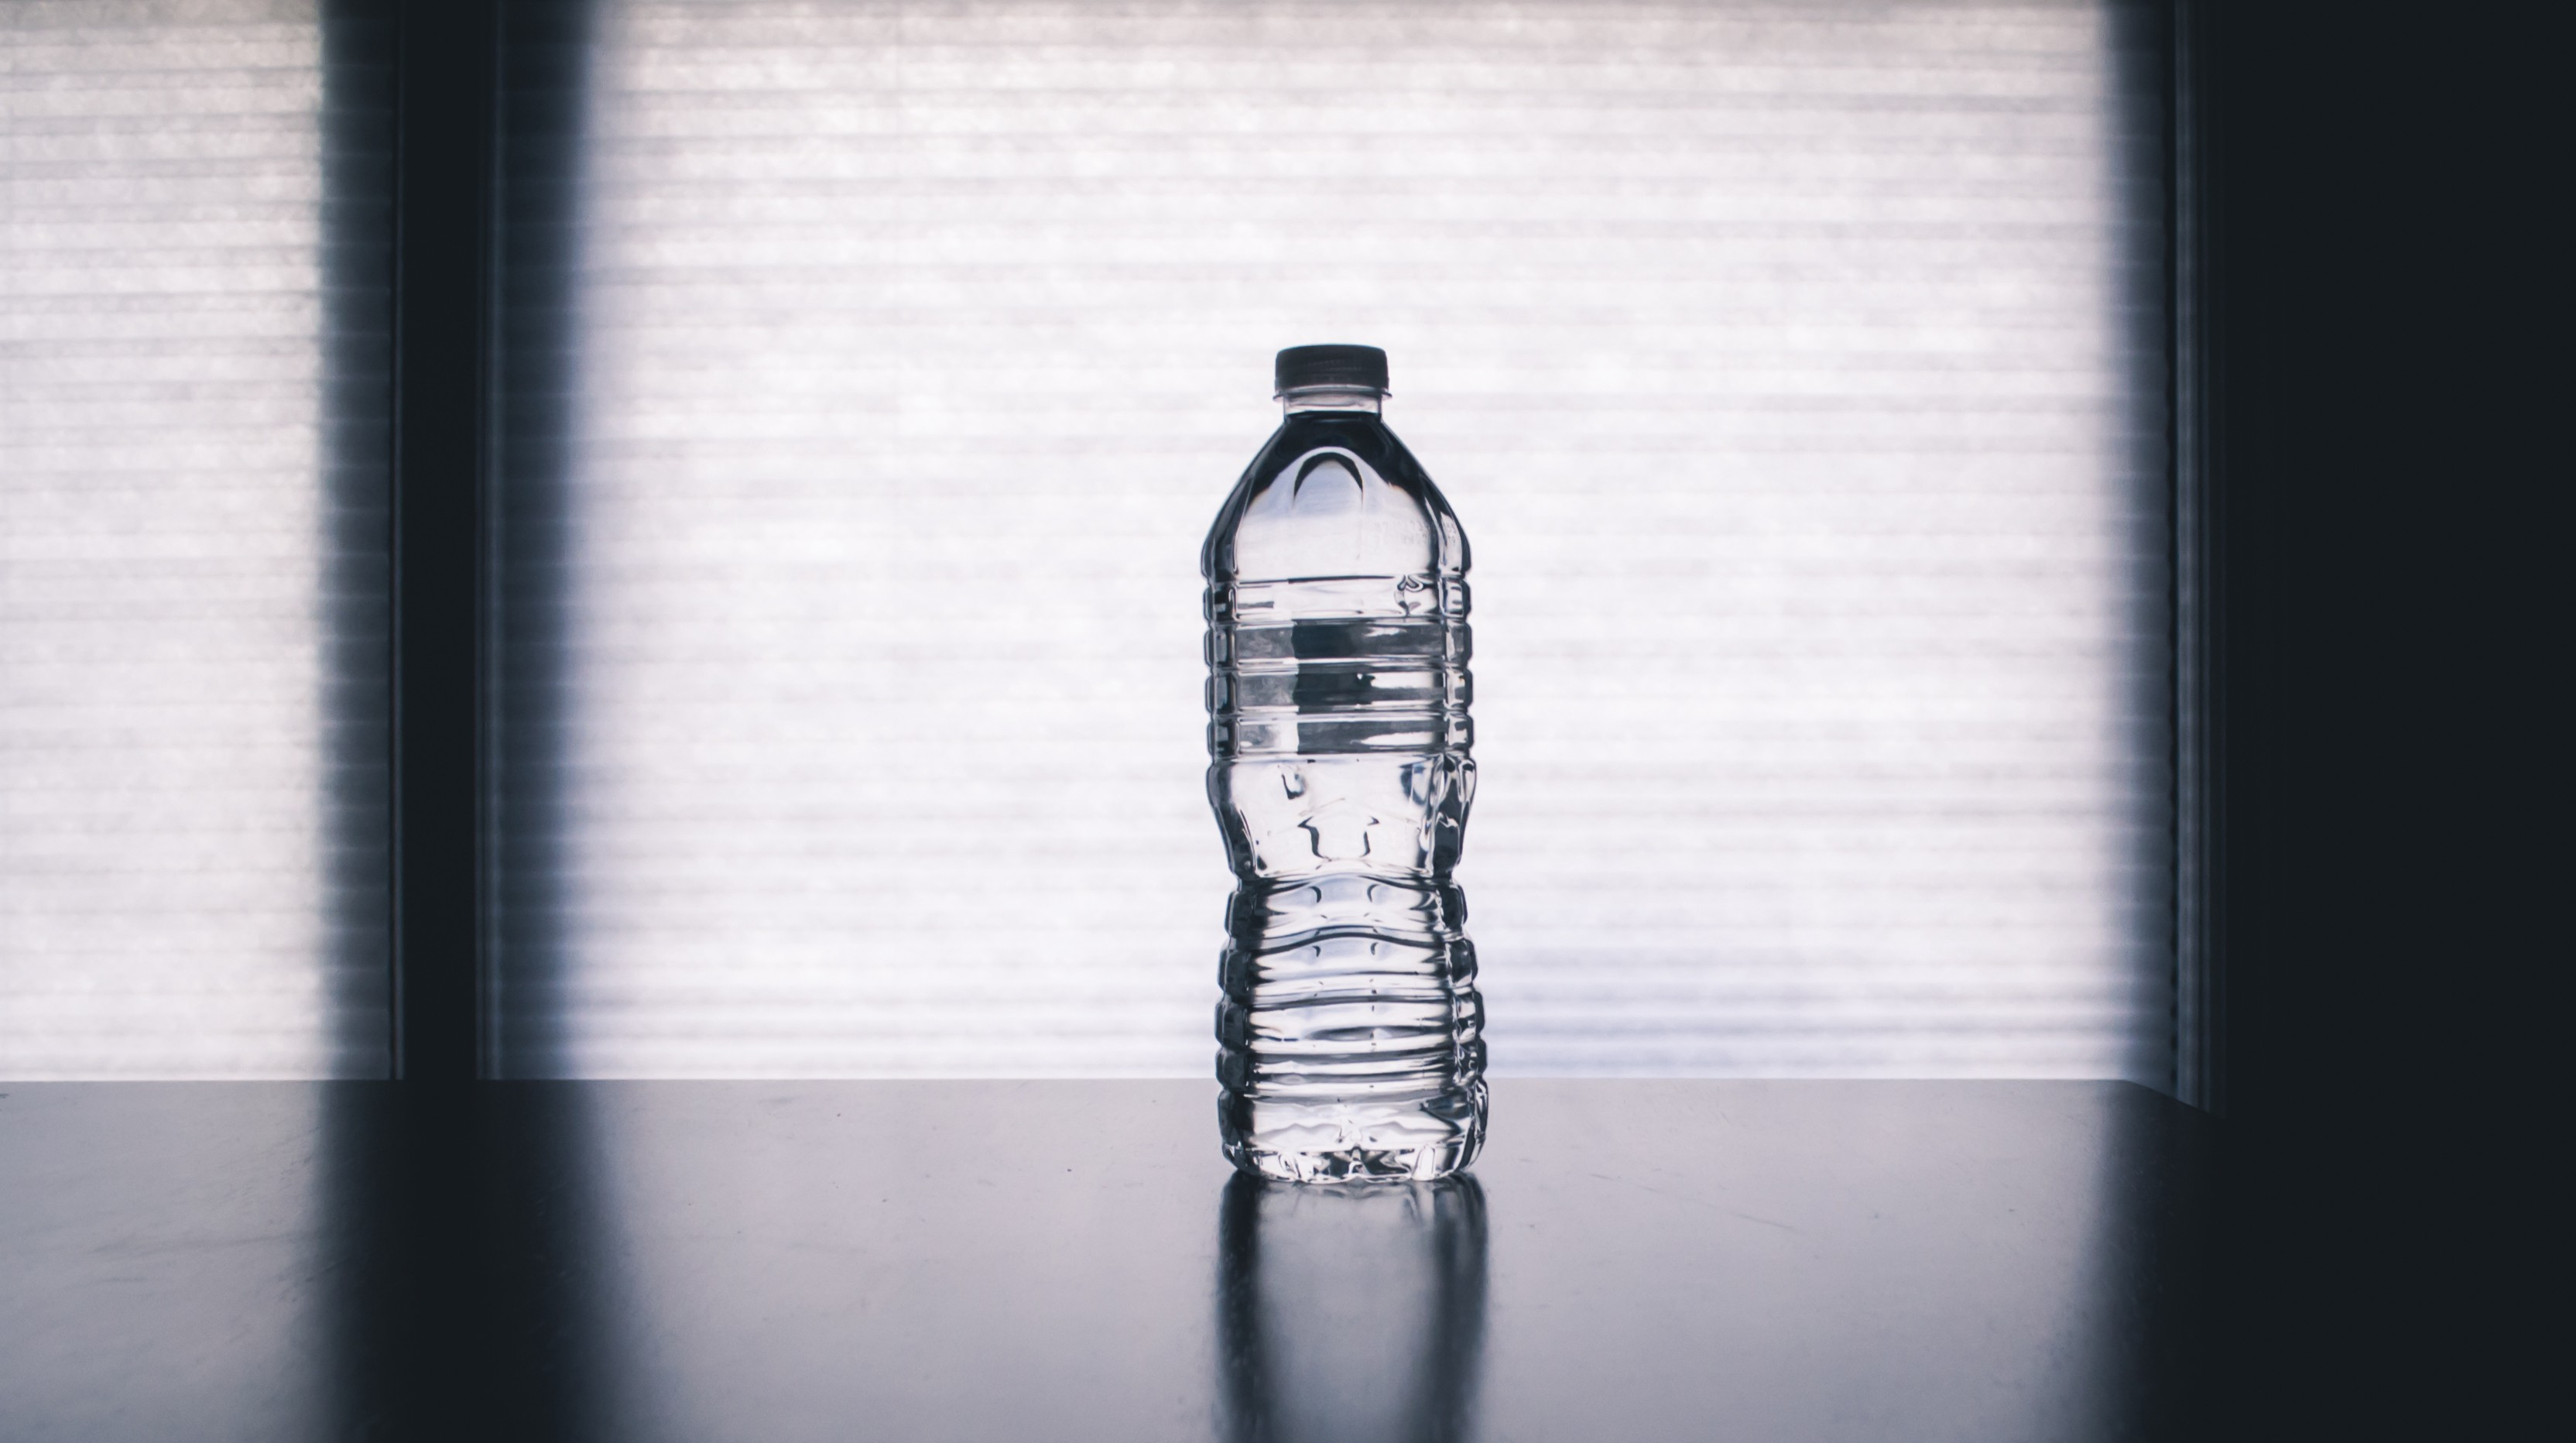 Bottled water placed on a surface.